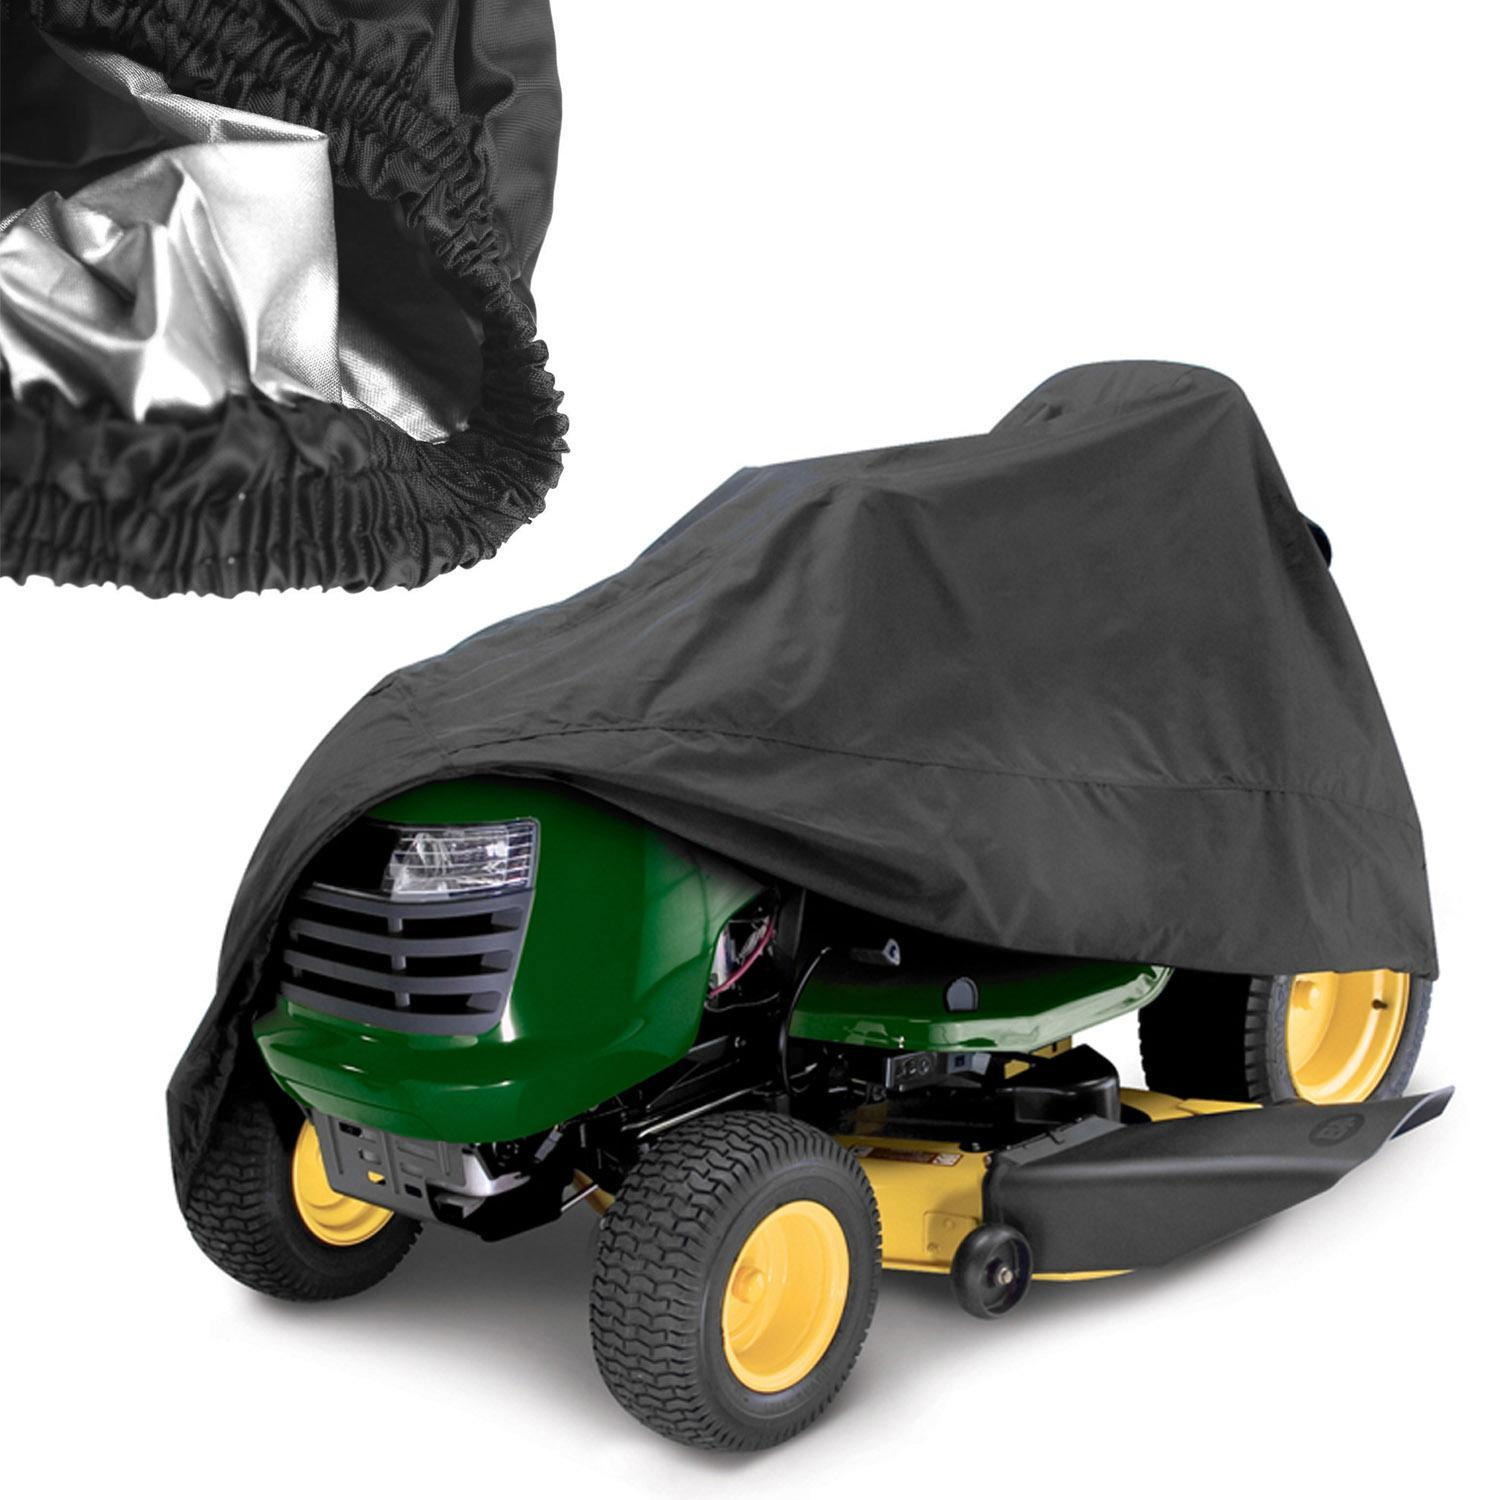 Waterproof Small Car Cover 190T Nylon Cloth Power Mobility Scooter Storage SPPYY  sc 1 st  Walmart & Waterproof Small Car Cover 190T Nylon Cloth Power Mobility Scooter ...